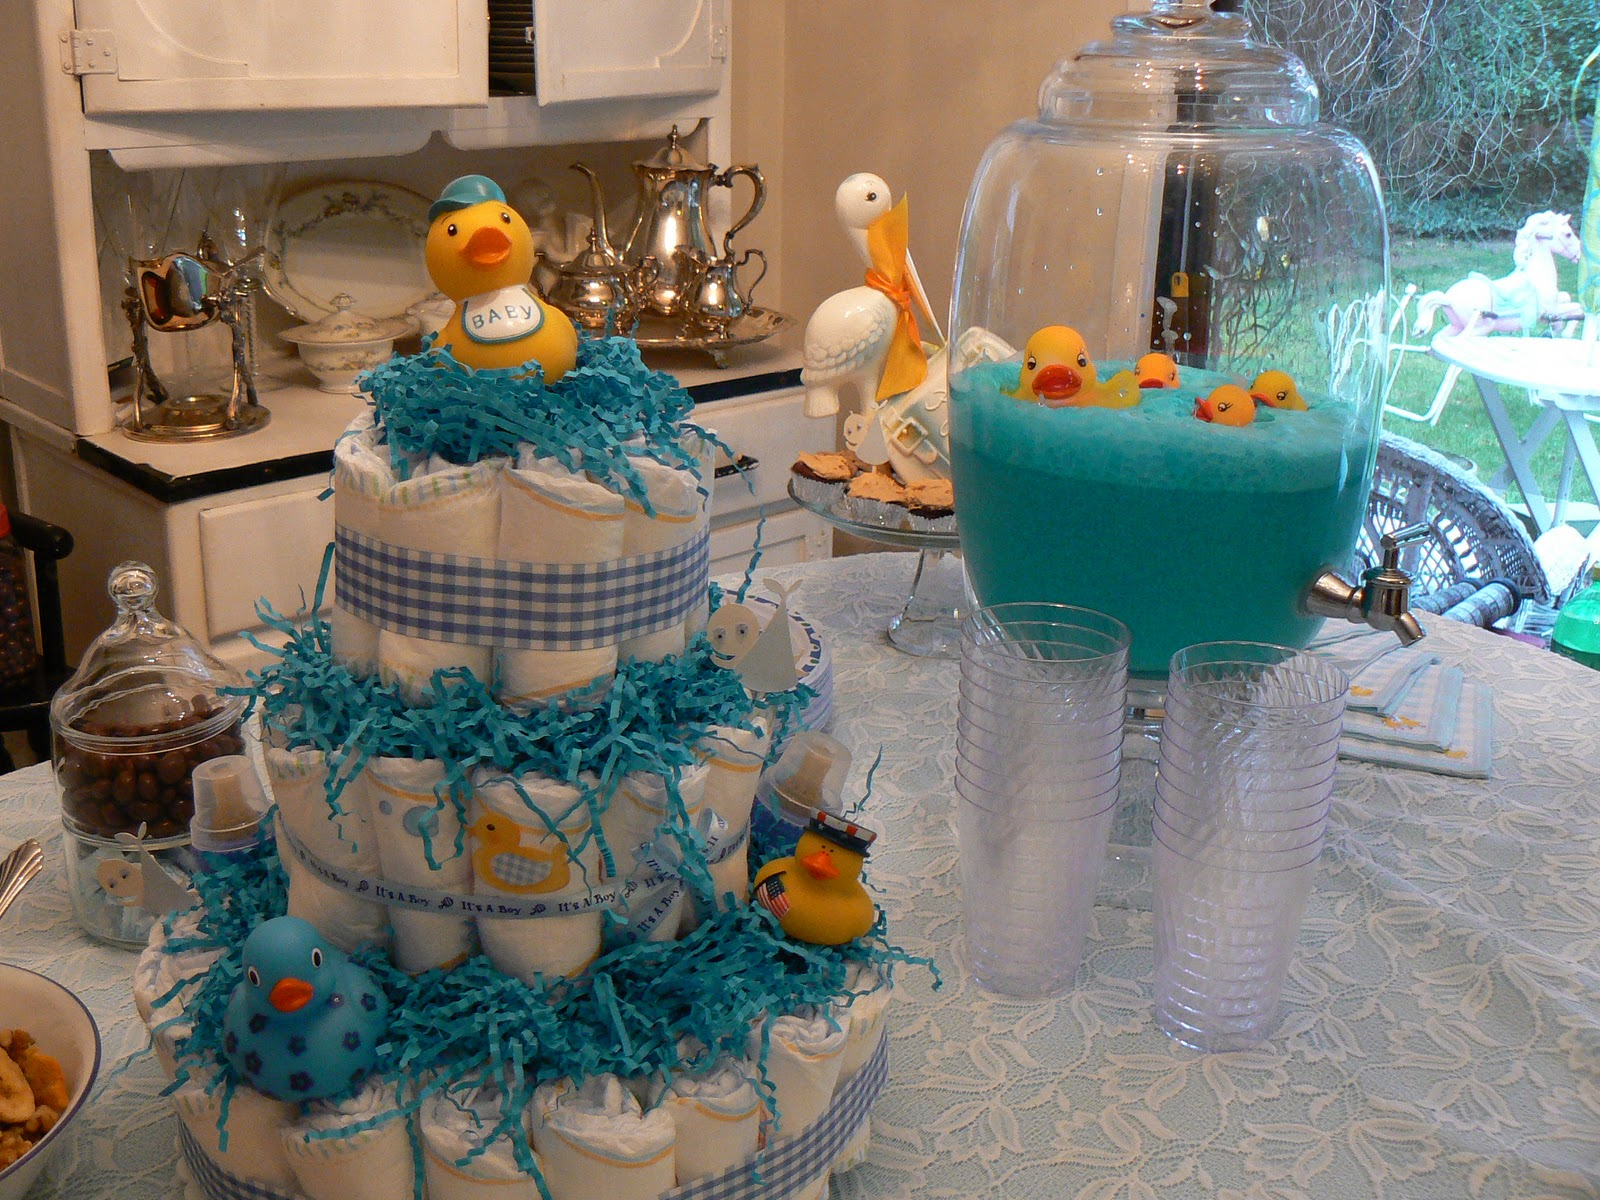 ducky baby shower on pinterest rubber ducky baby shower rubber duck